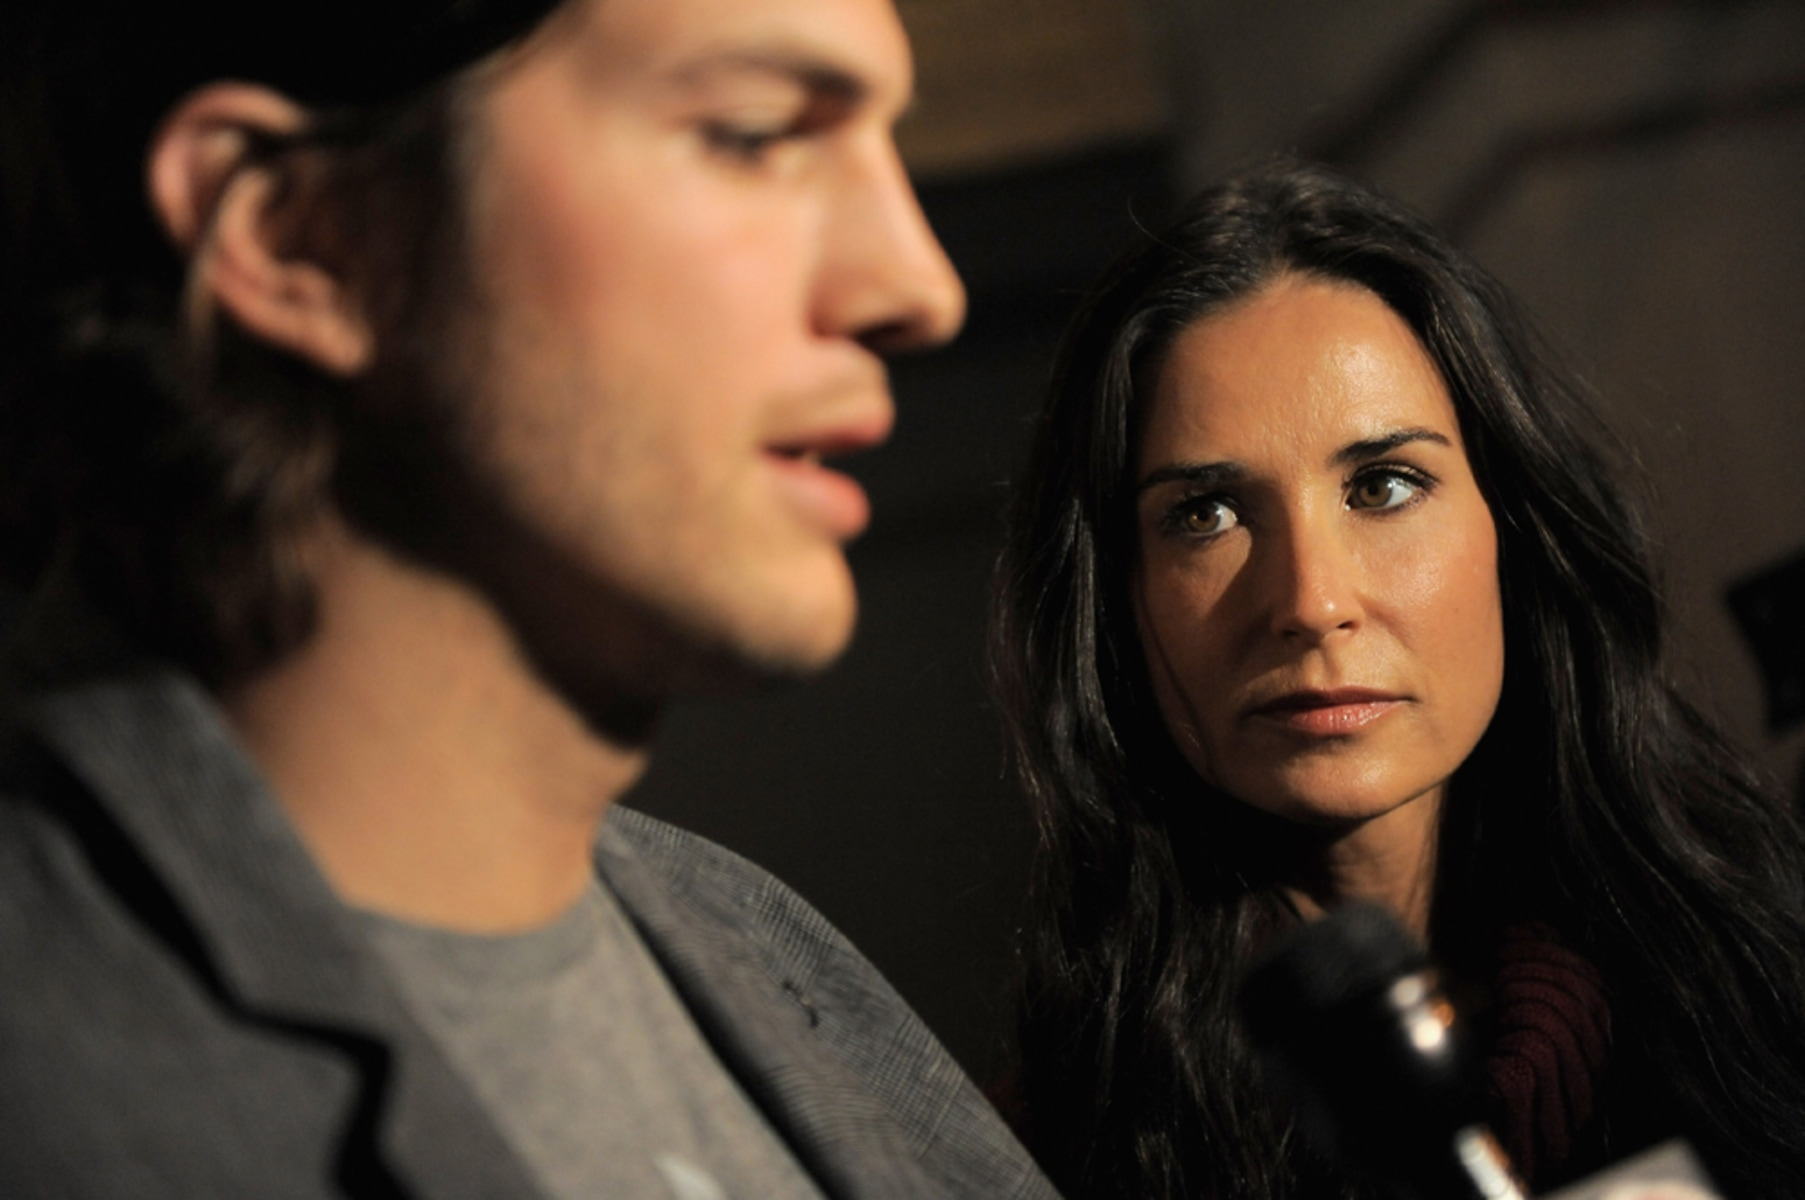 Image: Demi Moore and Ashton Kutcher